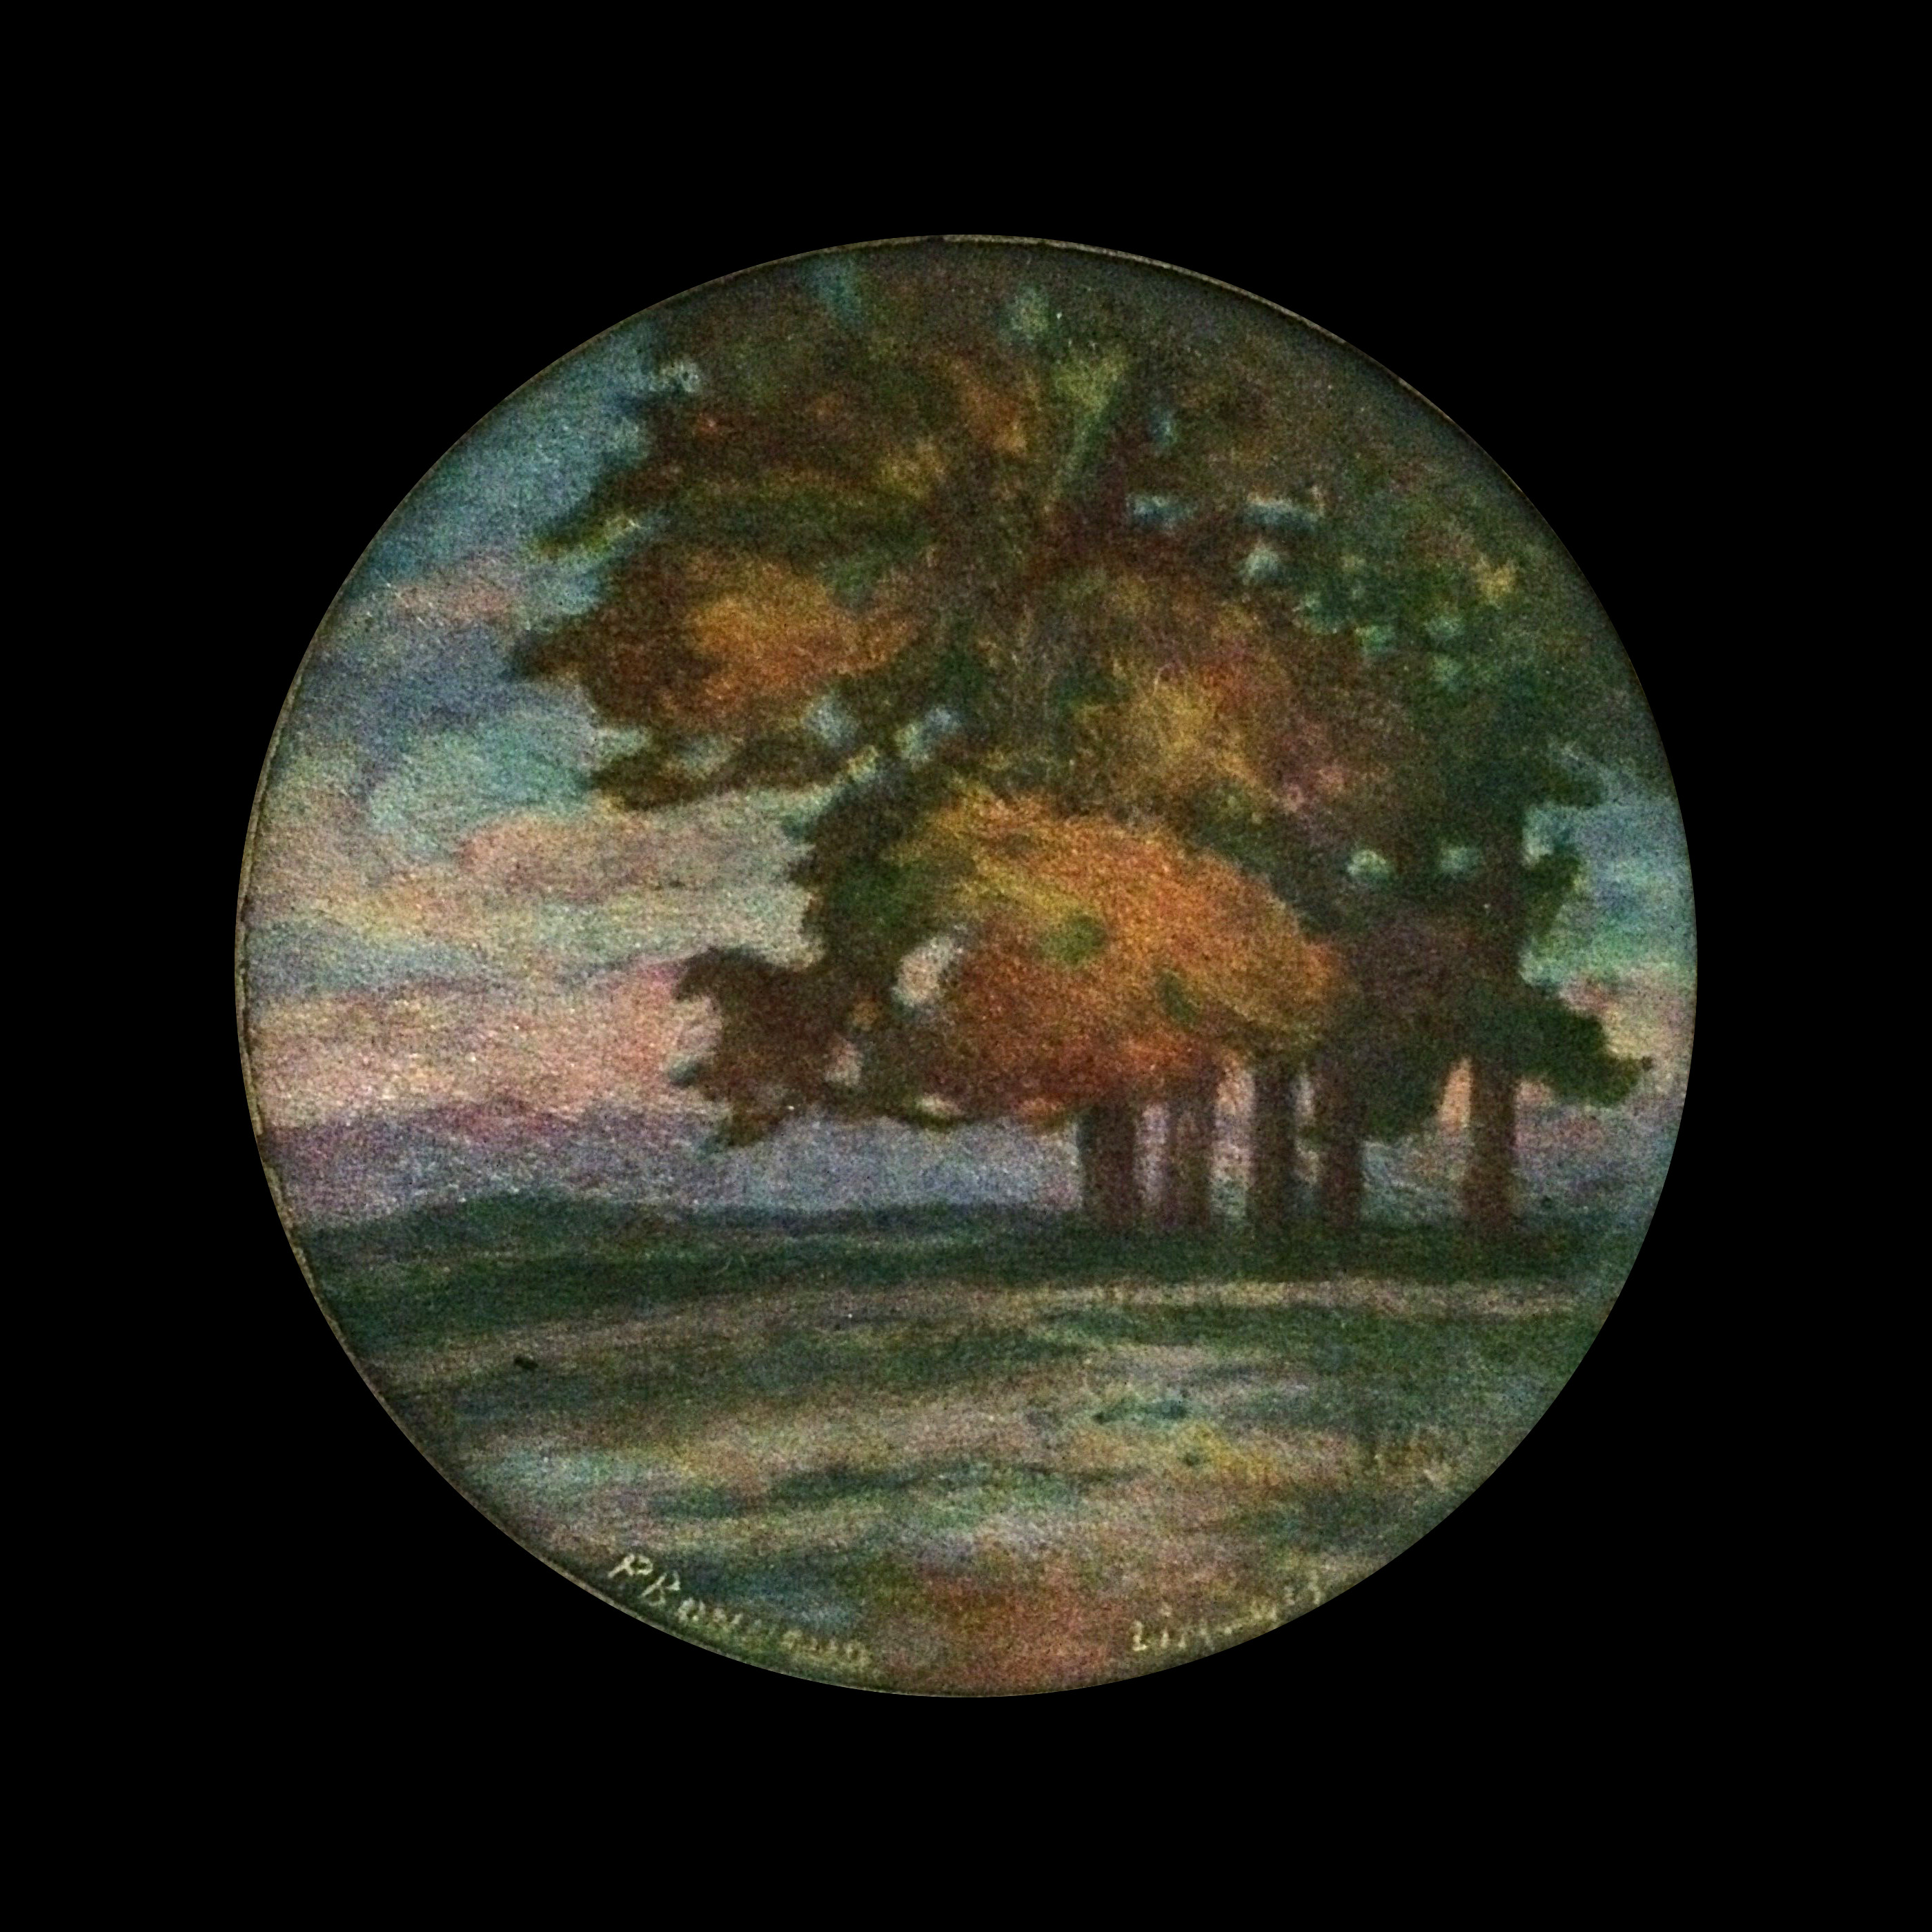 Pierre Bonnaud (1865-1930) French Enamel on copper impressionist Landscape c.1890